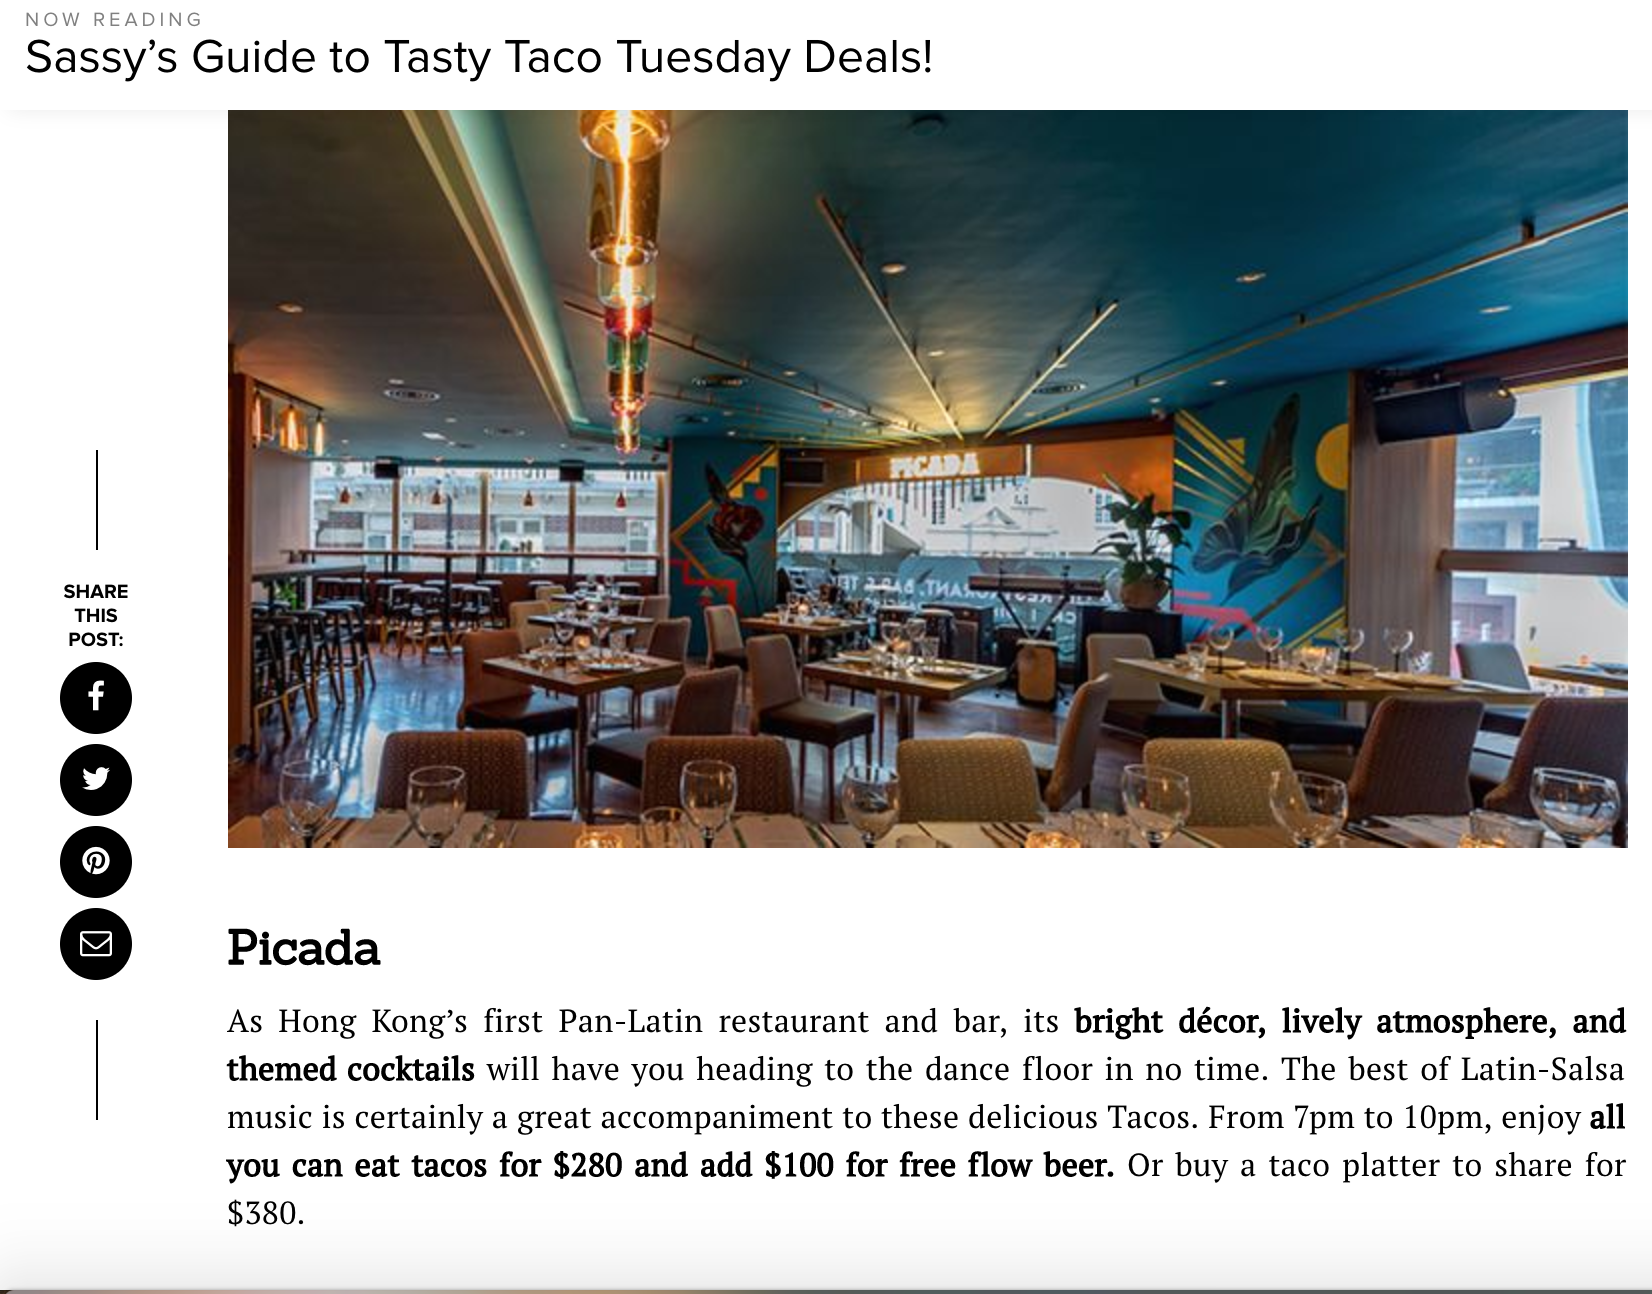 Read the full article here:https://www.sassyhongkong.com/eat-drink-restaurants-taco-tuesday-mexican-deals-guide/